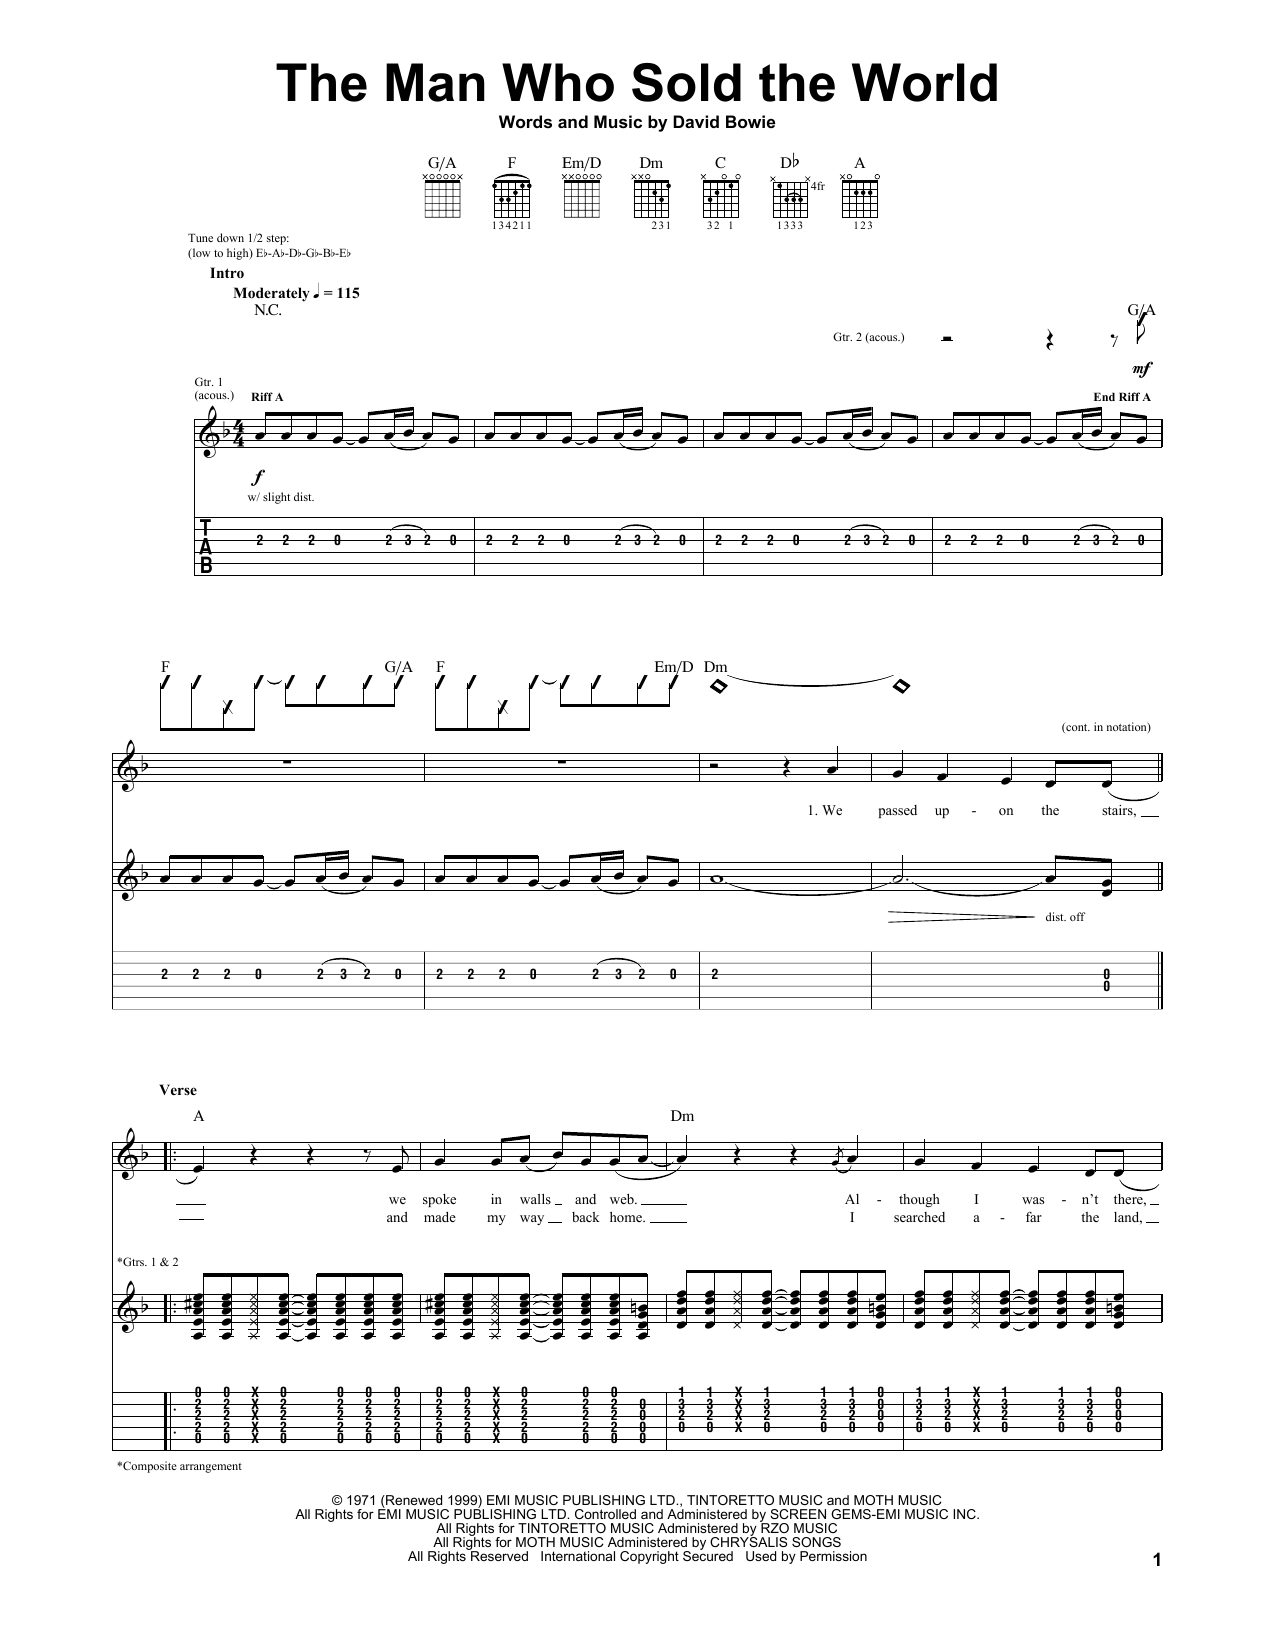 The Man Who Sold The World by Nirvana Guitar Tab Digital Sheet Music